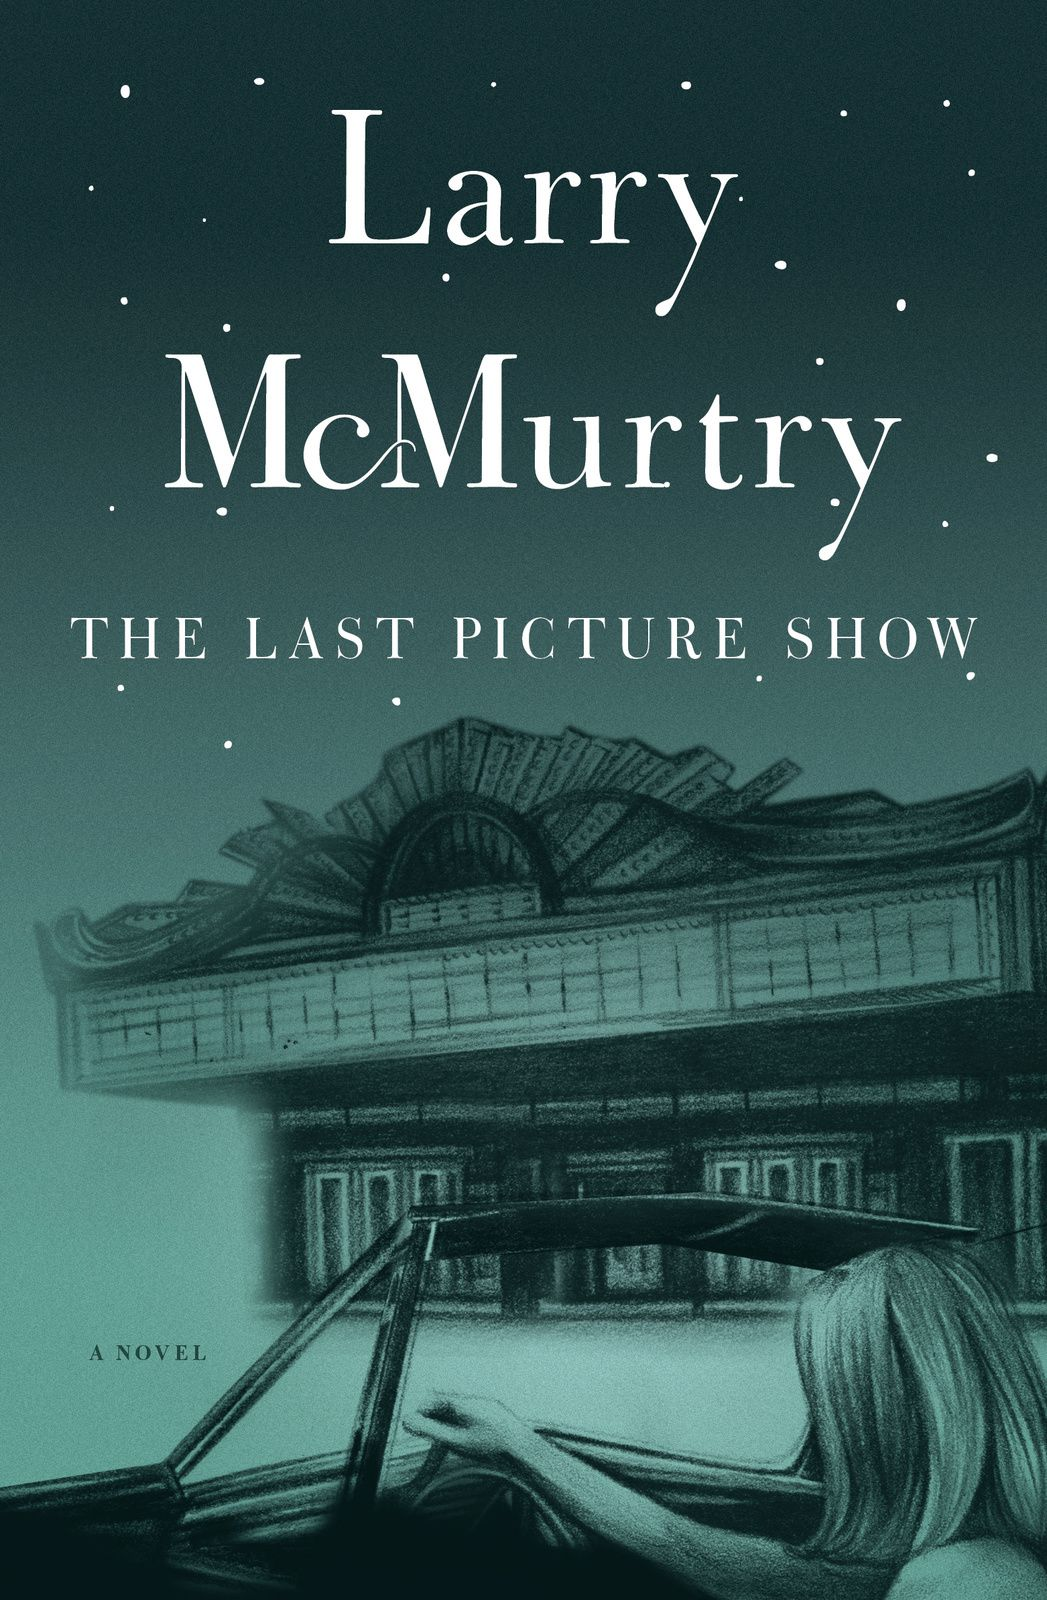 Larry McMurtry, The Last Picture Show - Simon & Schuster, Inc.